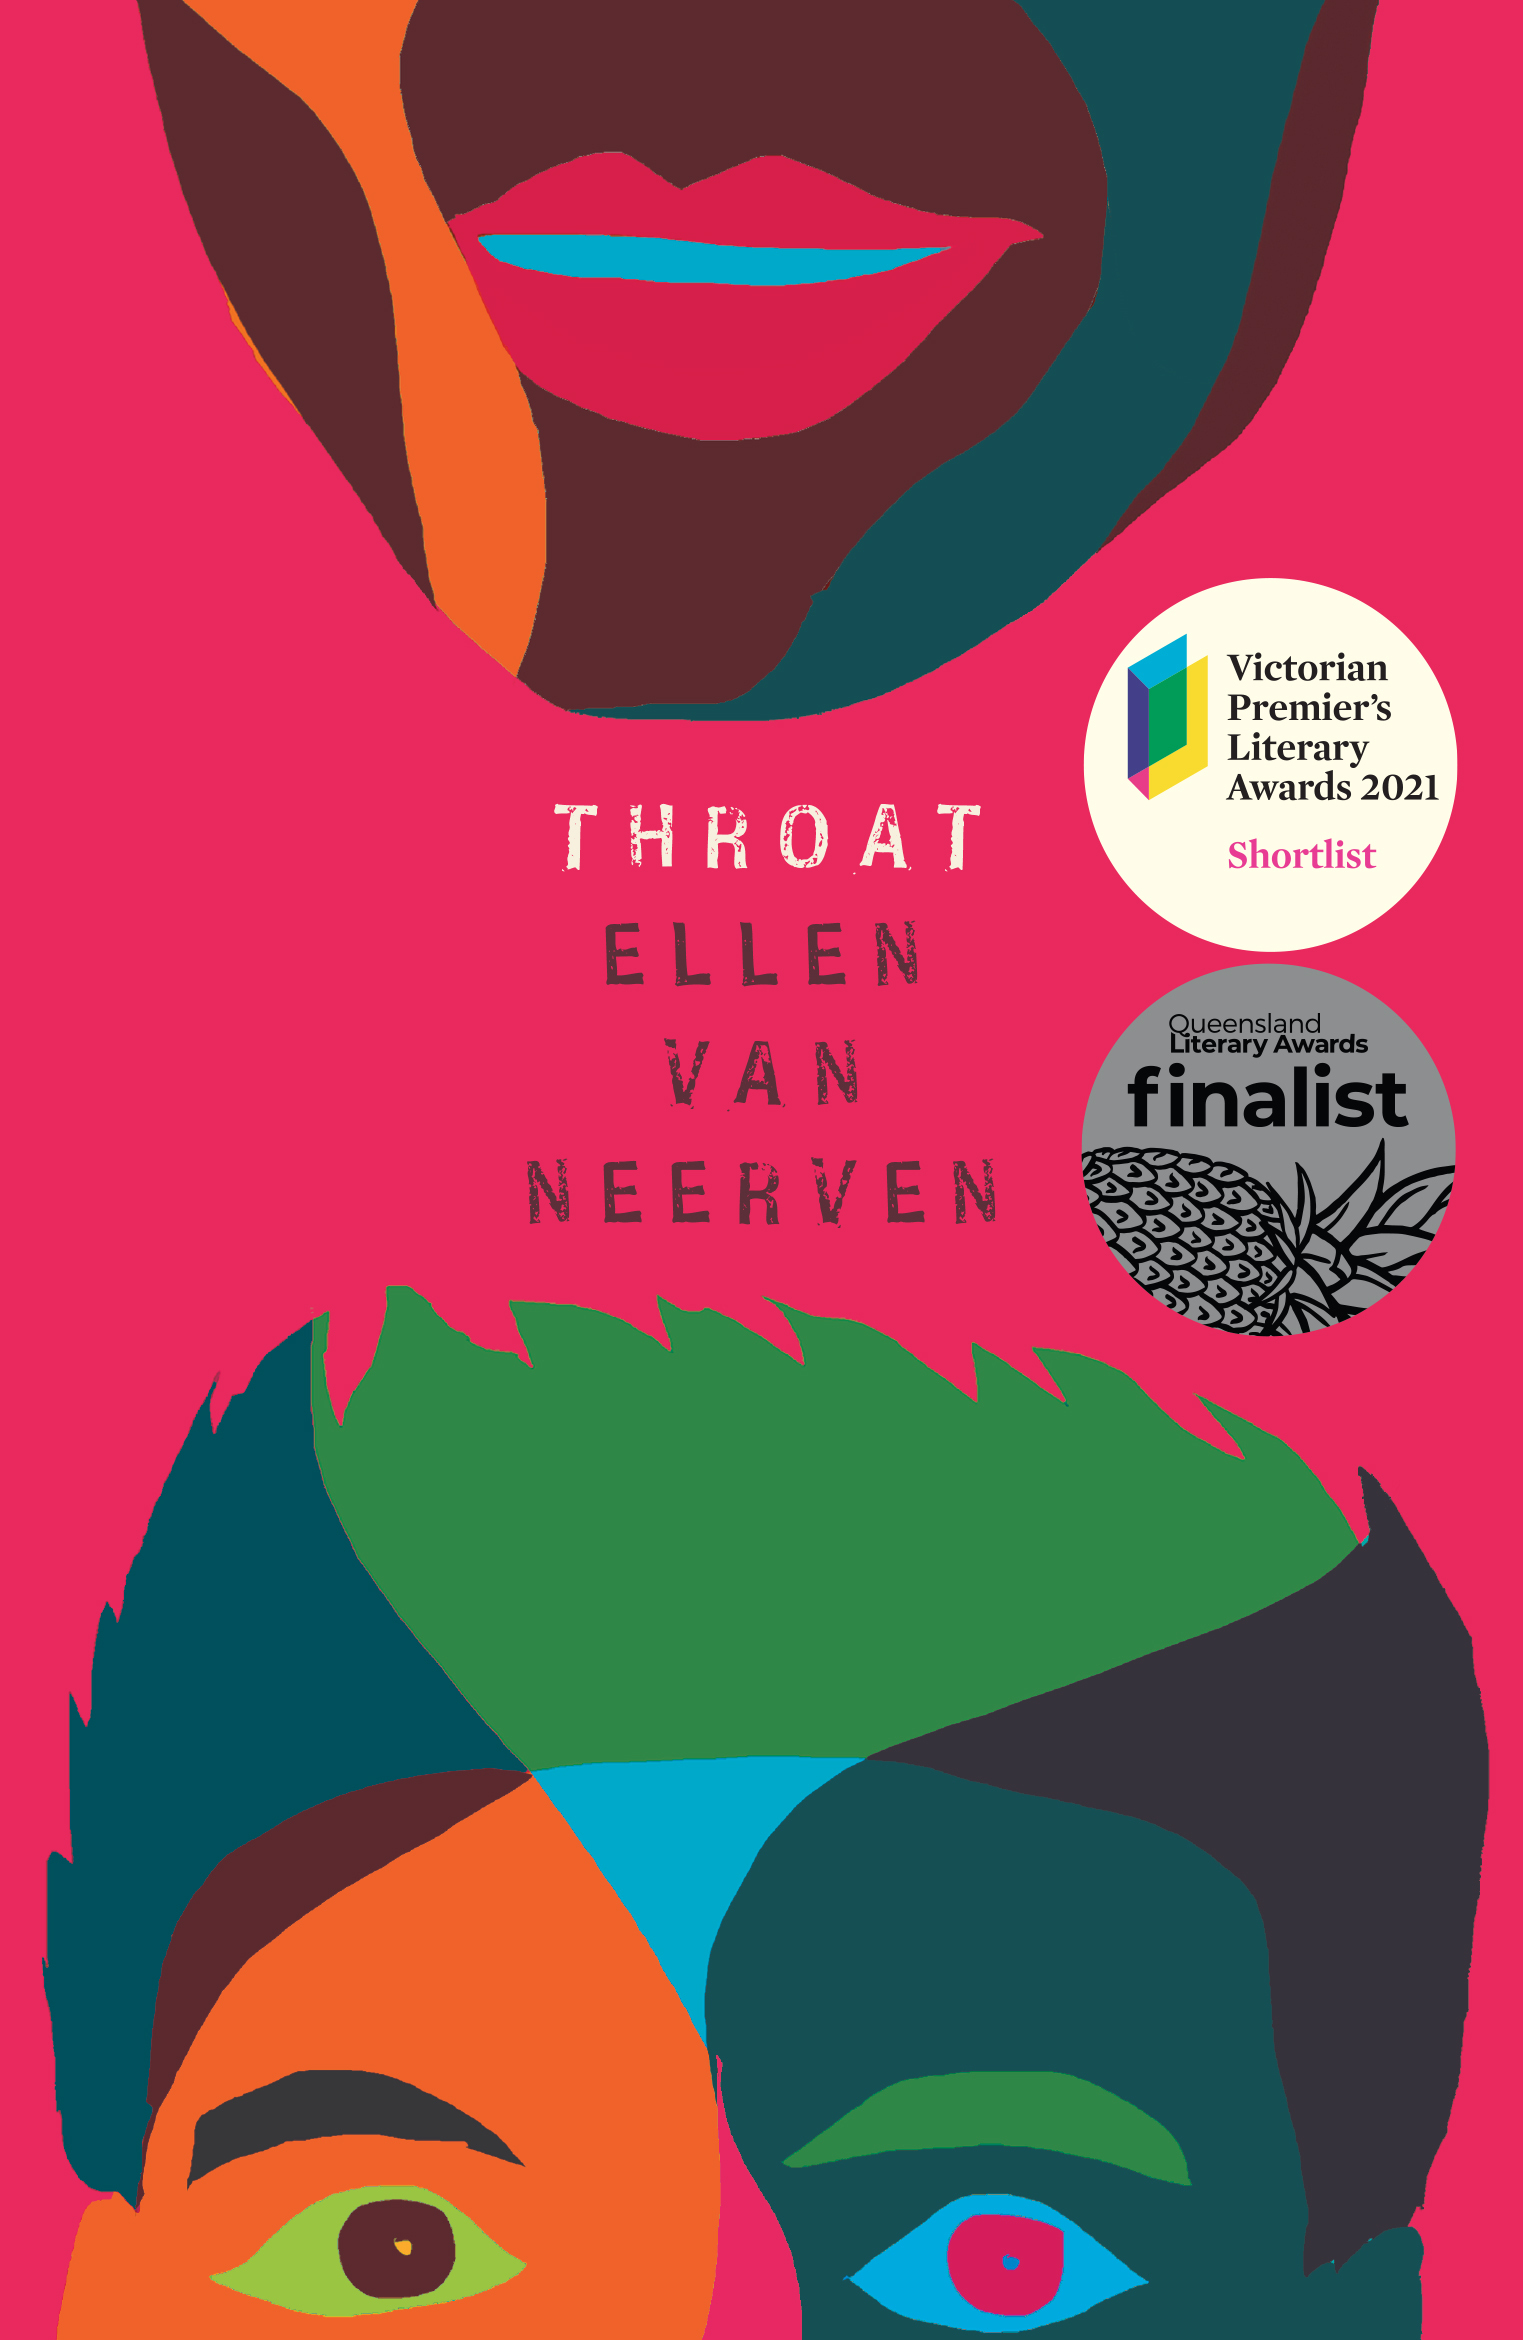 Hot pink background with bright-coloured illustration of face and text: THROAT ELLEN VAN NEERVEN